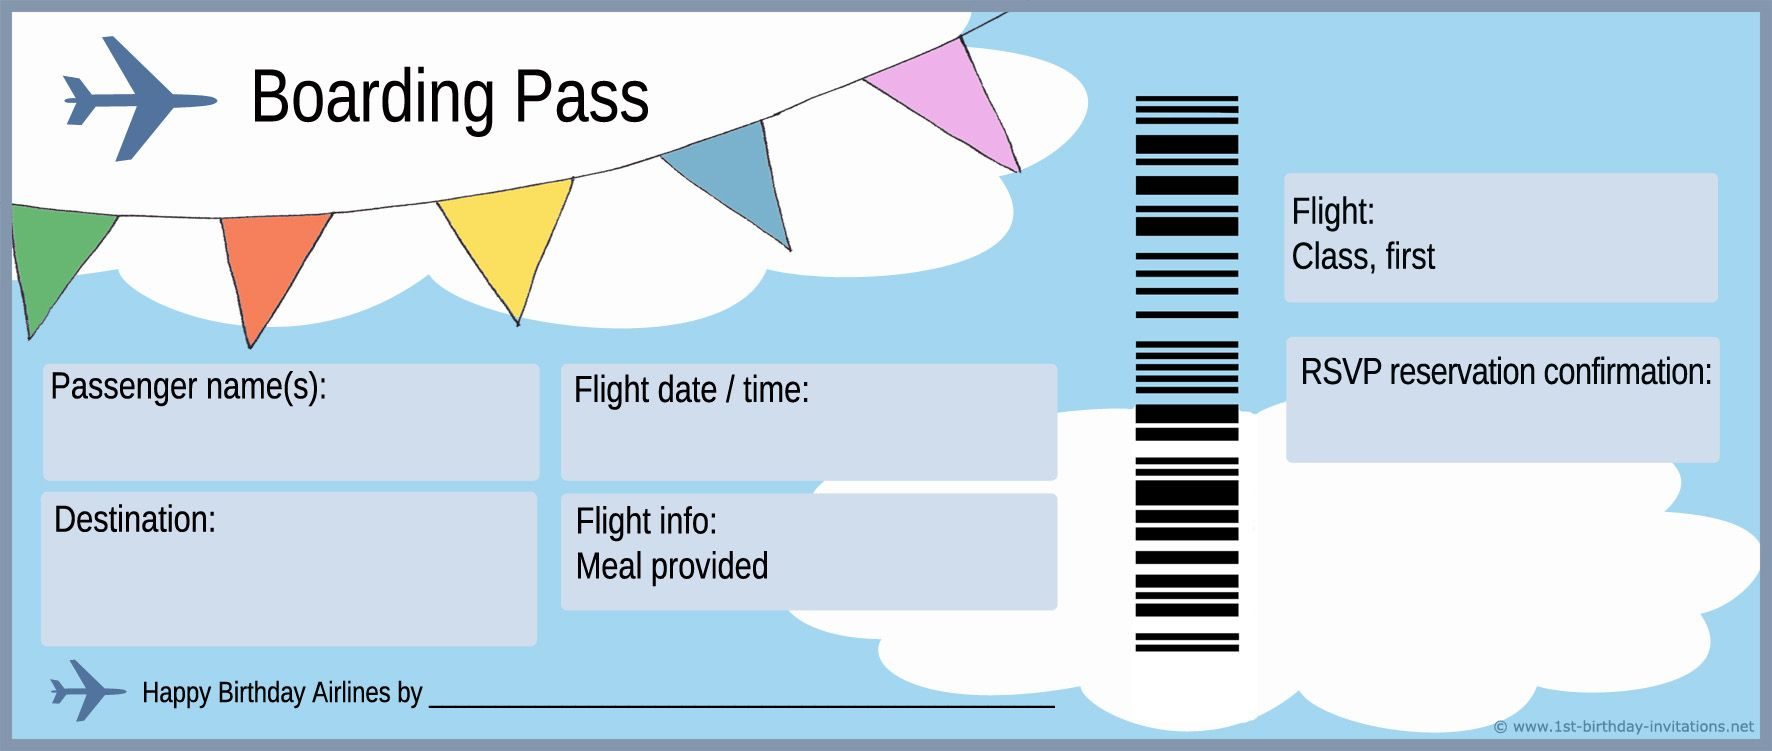 Airplane boarding pass clipart banner library download Plane ticket and boarding pass for first birthday party invitation ... banner library download